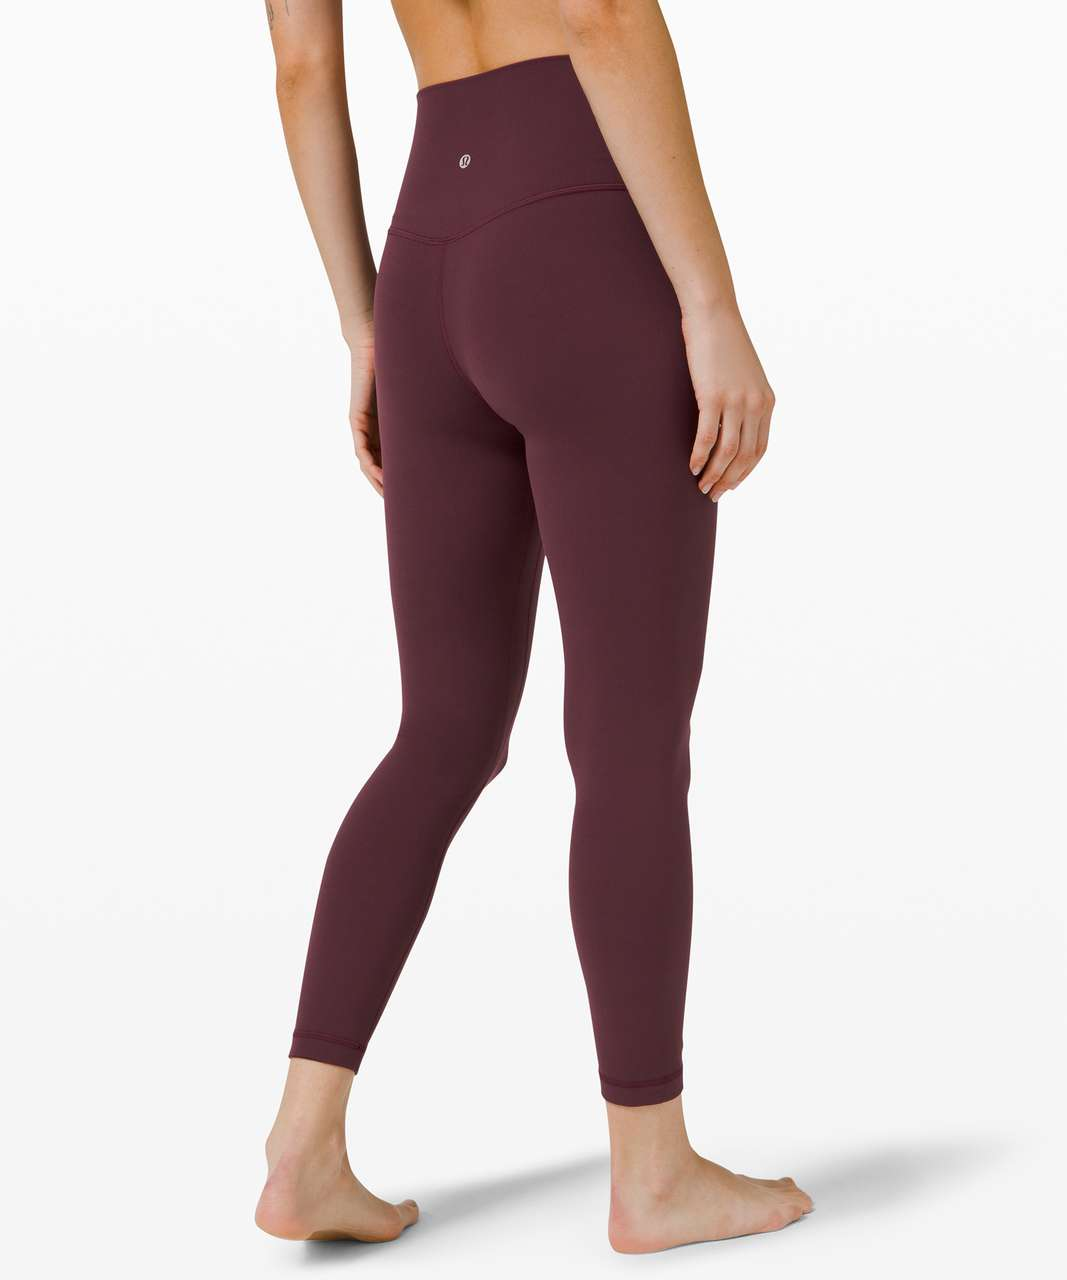 """Lululemon Align Pant II 25"""" - Cassis (First Release)"""